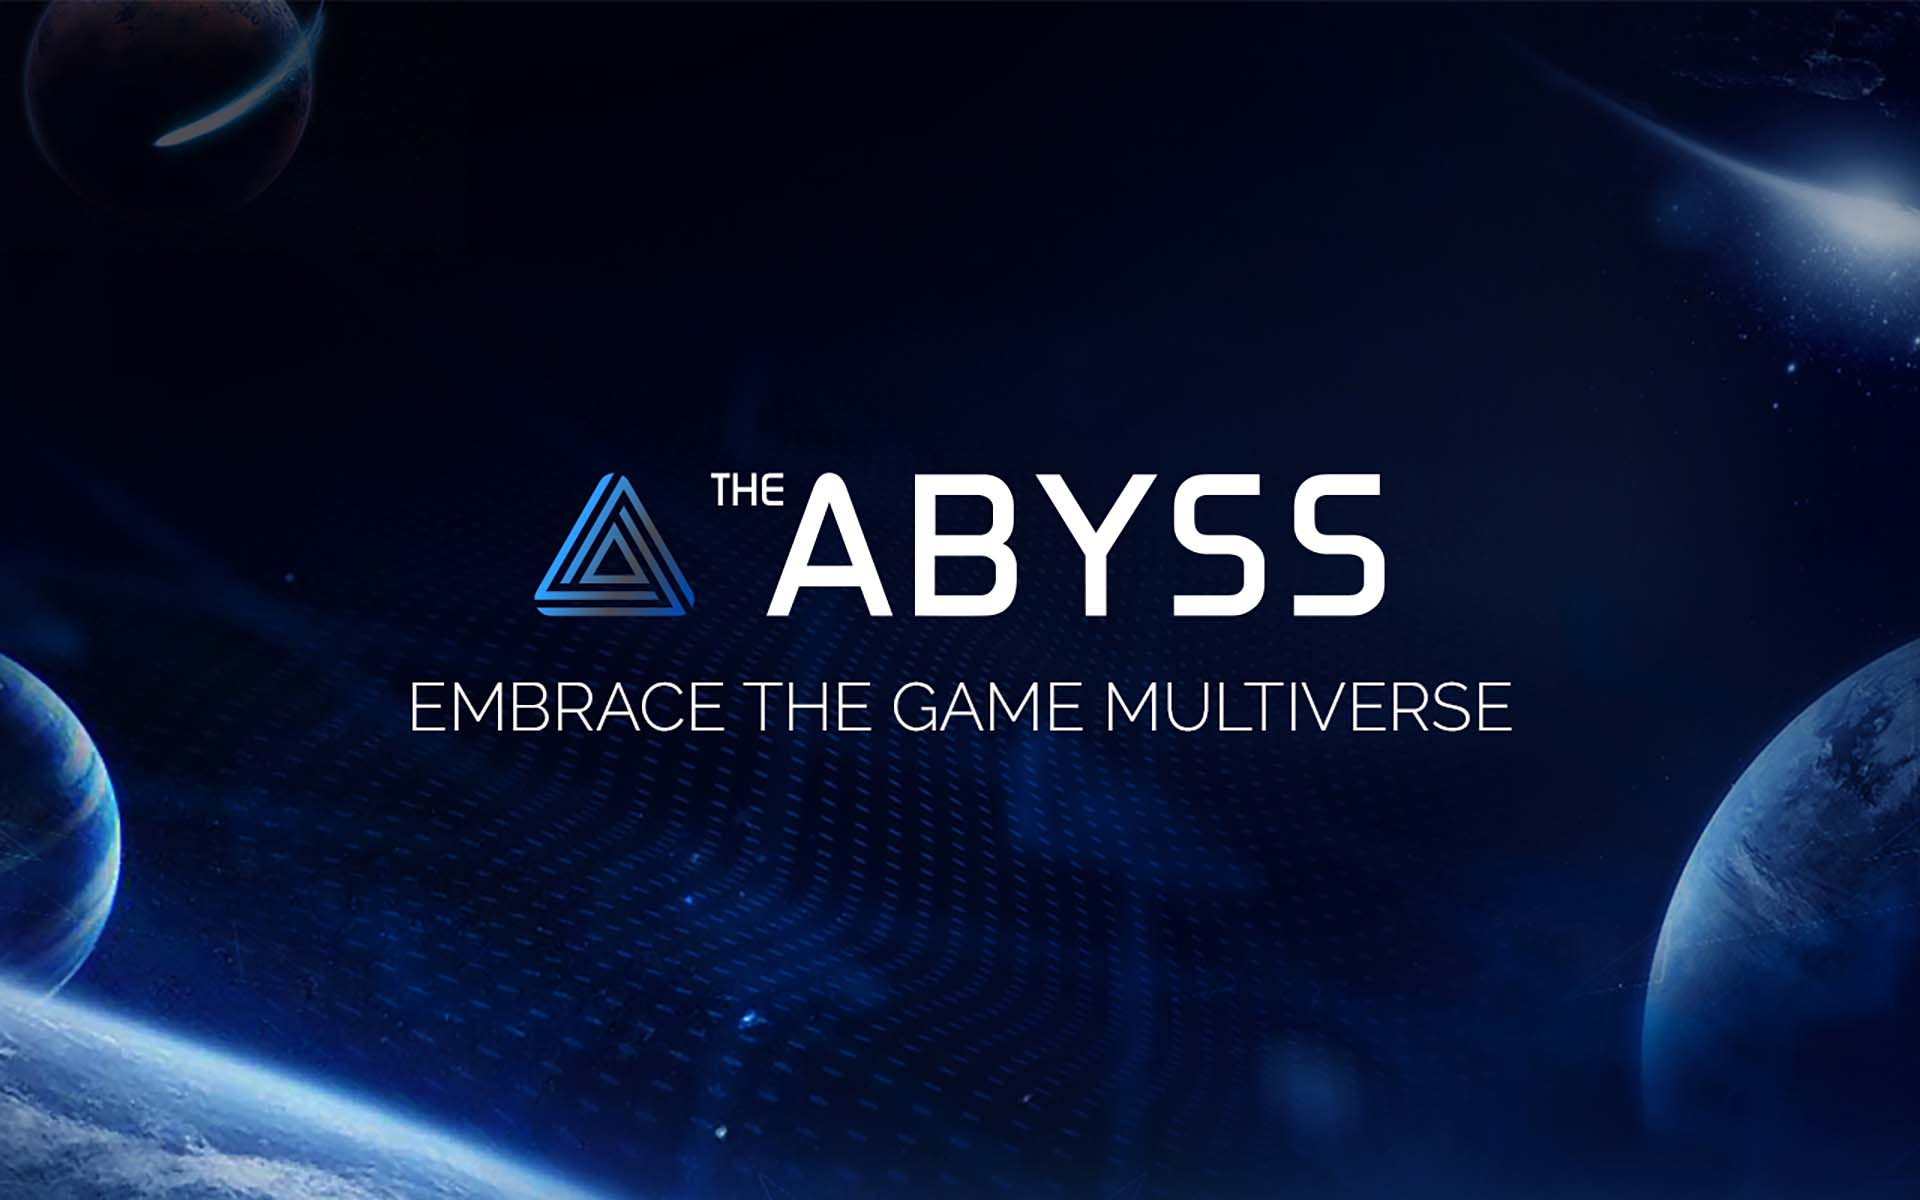 The Abyss - the First Implemented DAICO - Tokens Available for Purchase on the Exchanges as of June 7, 2018